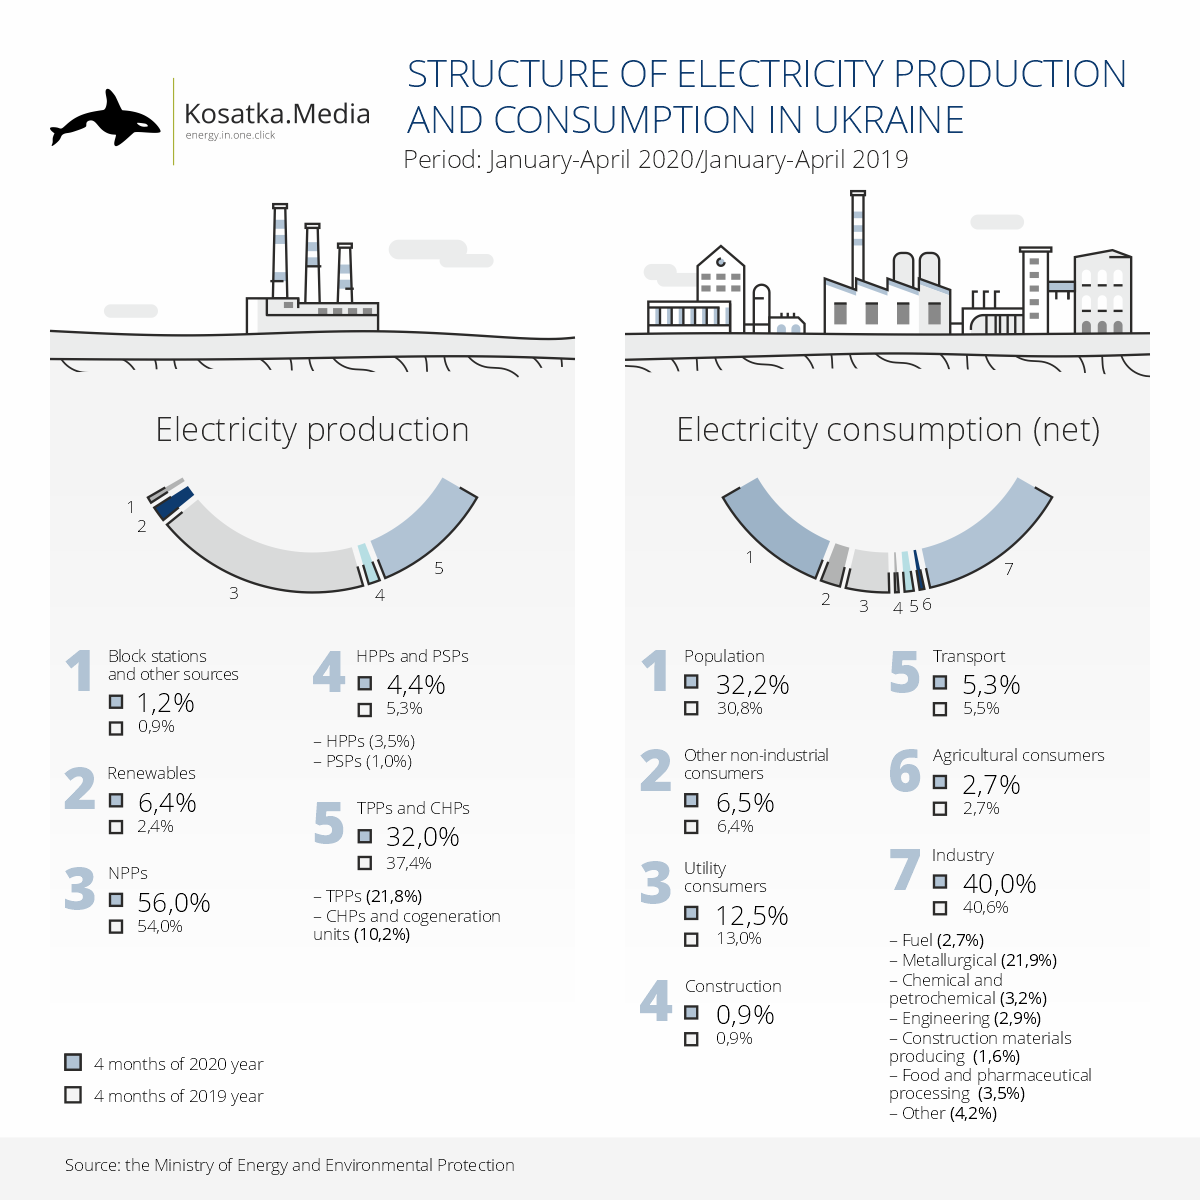 The structure of electricity production and consumption for 4 months of 2020